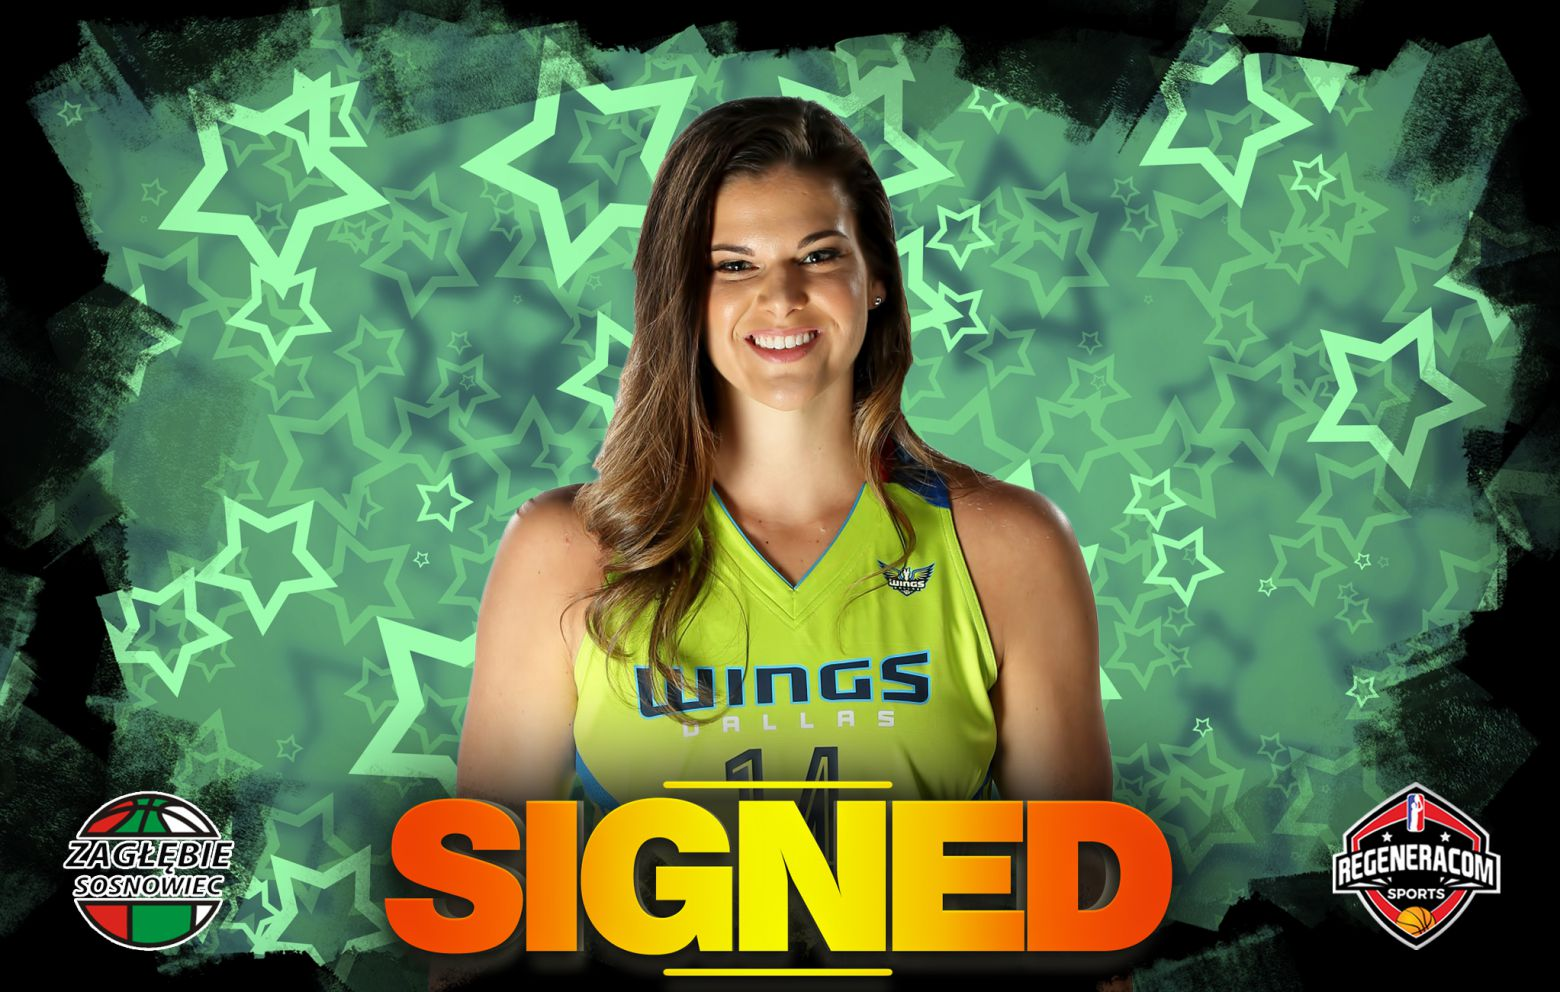 TORI JAROSZ has signed with Sosnowiec